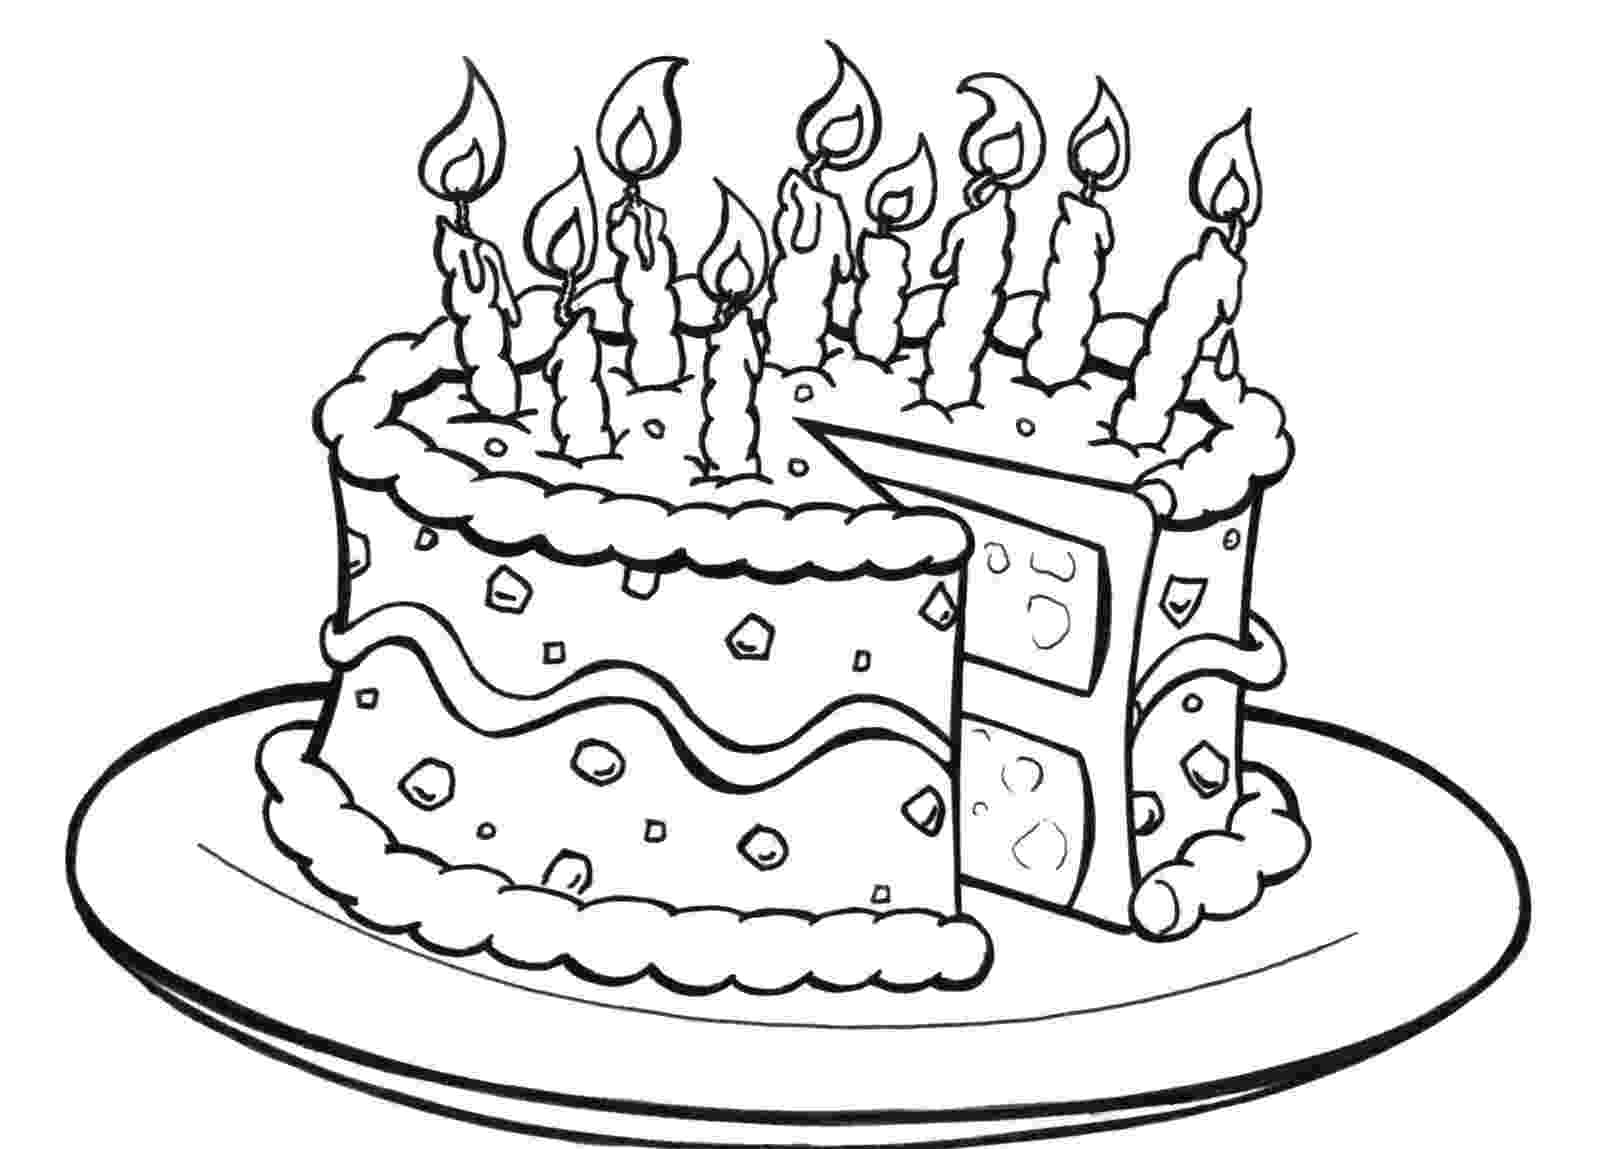 cake coloring pages to print cake coloring pages getcoloringpagescom print to pages coloring cake